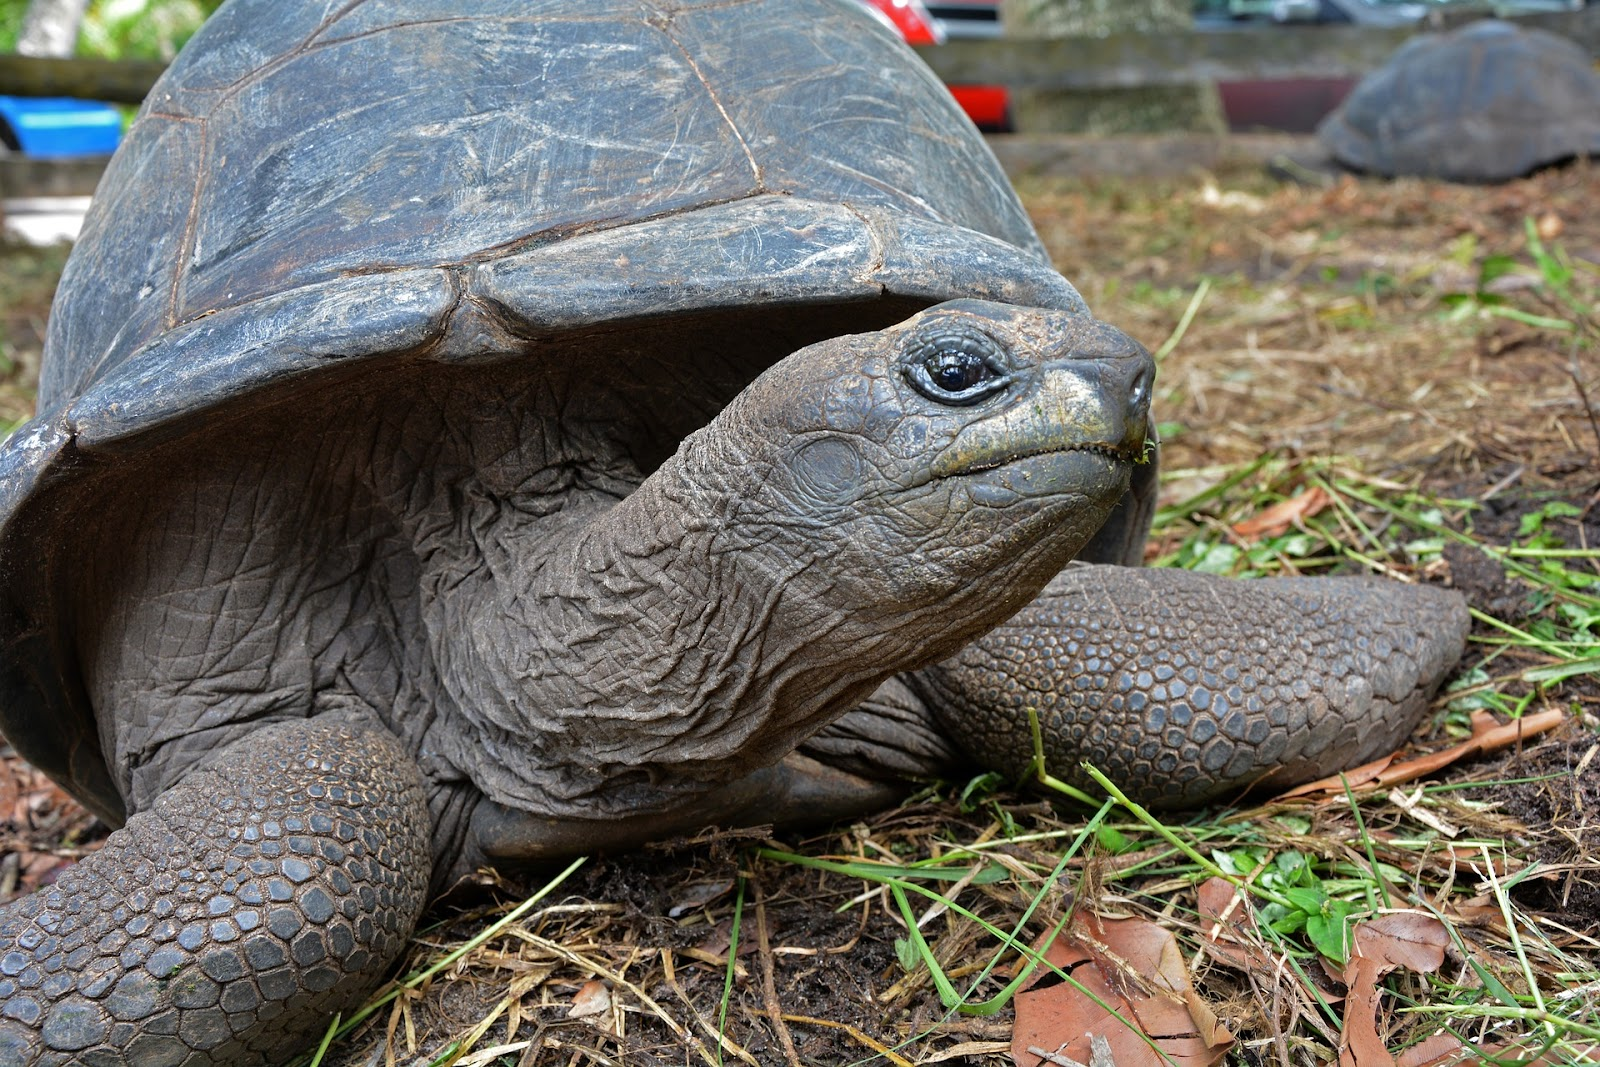 Tortoise outside looking into camera